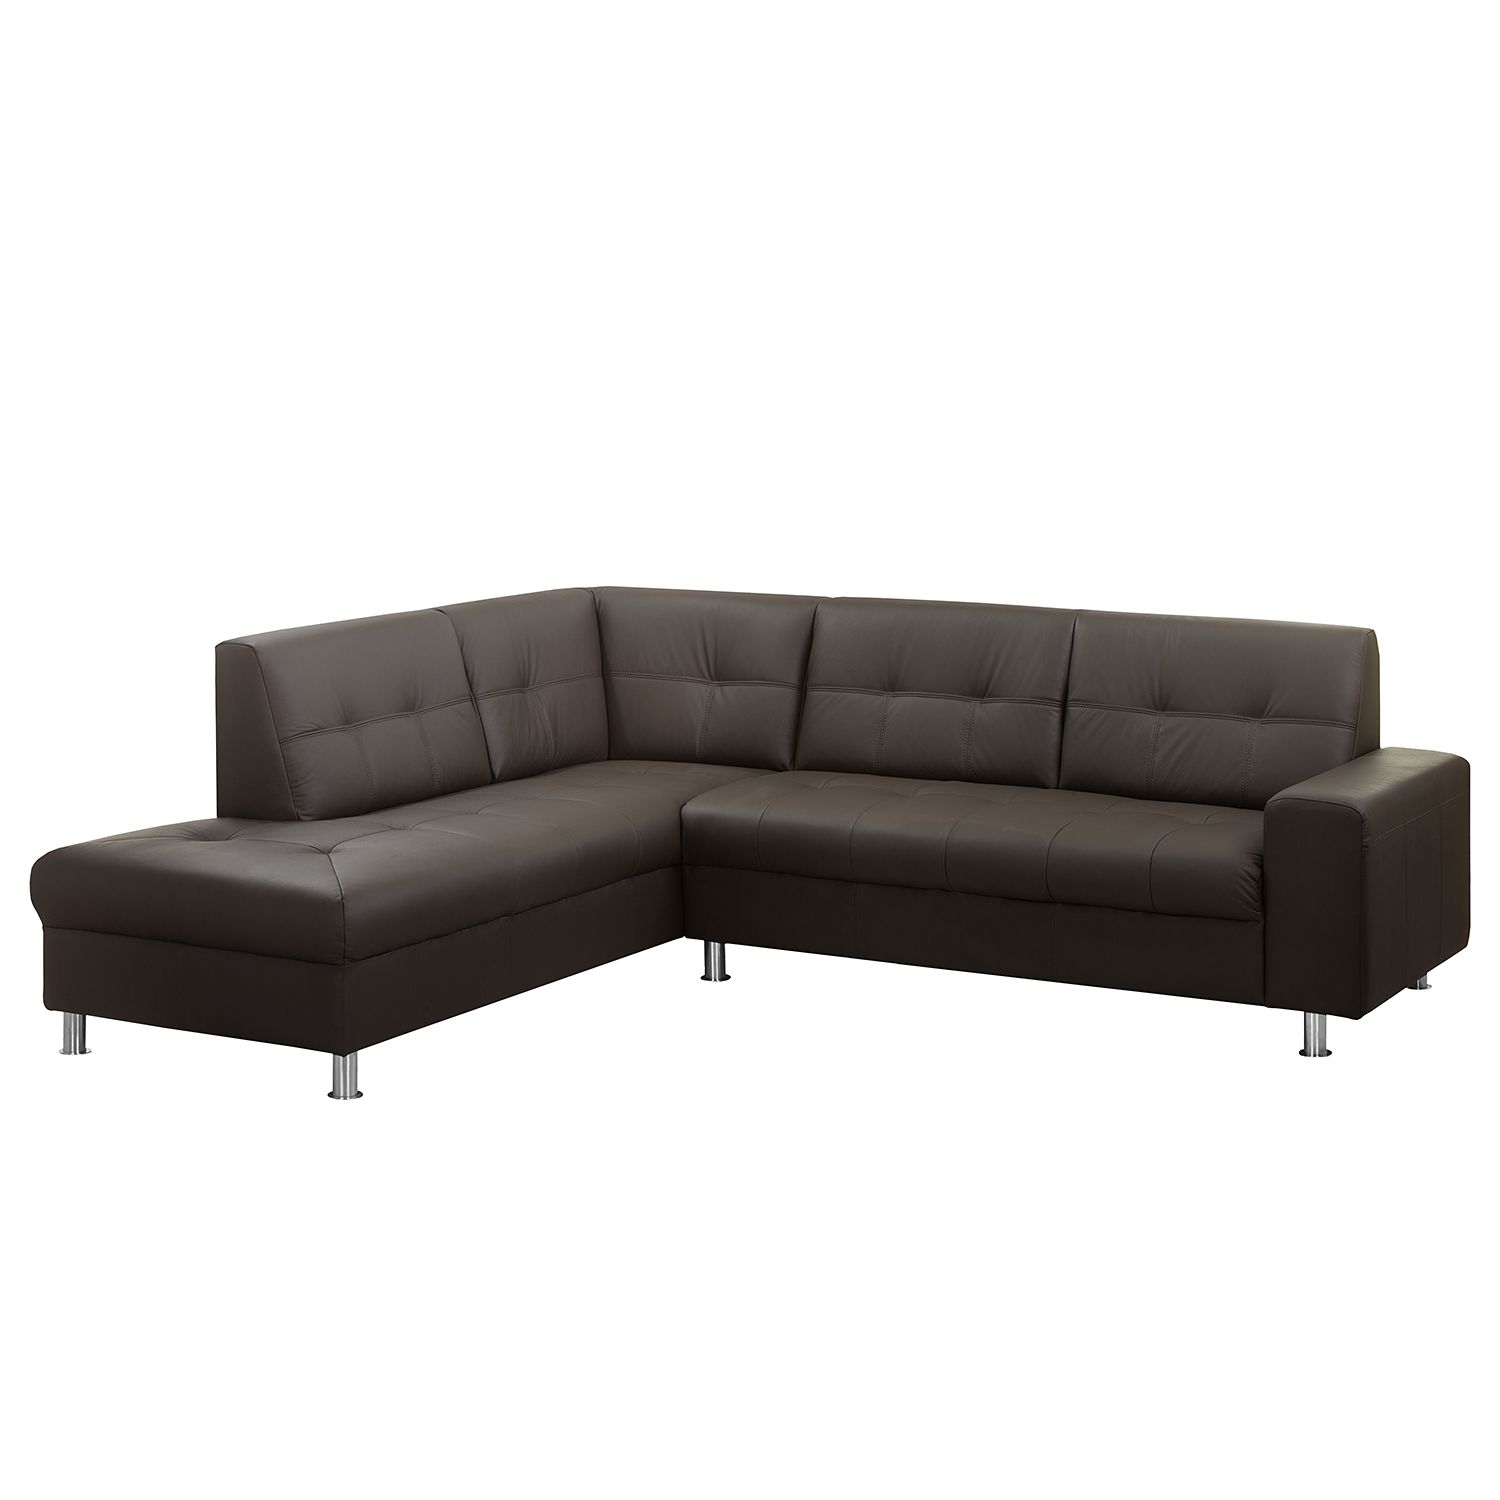 ecksofa straid i echtleder kunstleder ottomane davorstehend links espresso roomscape. Black Bedroom Furniture Sets. Home Design Ideas